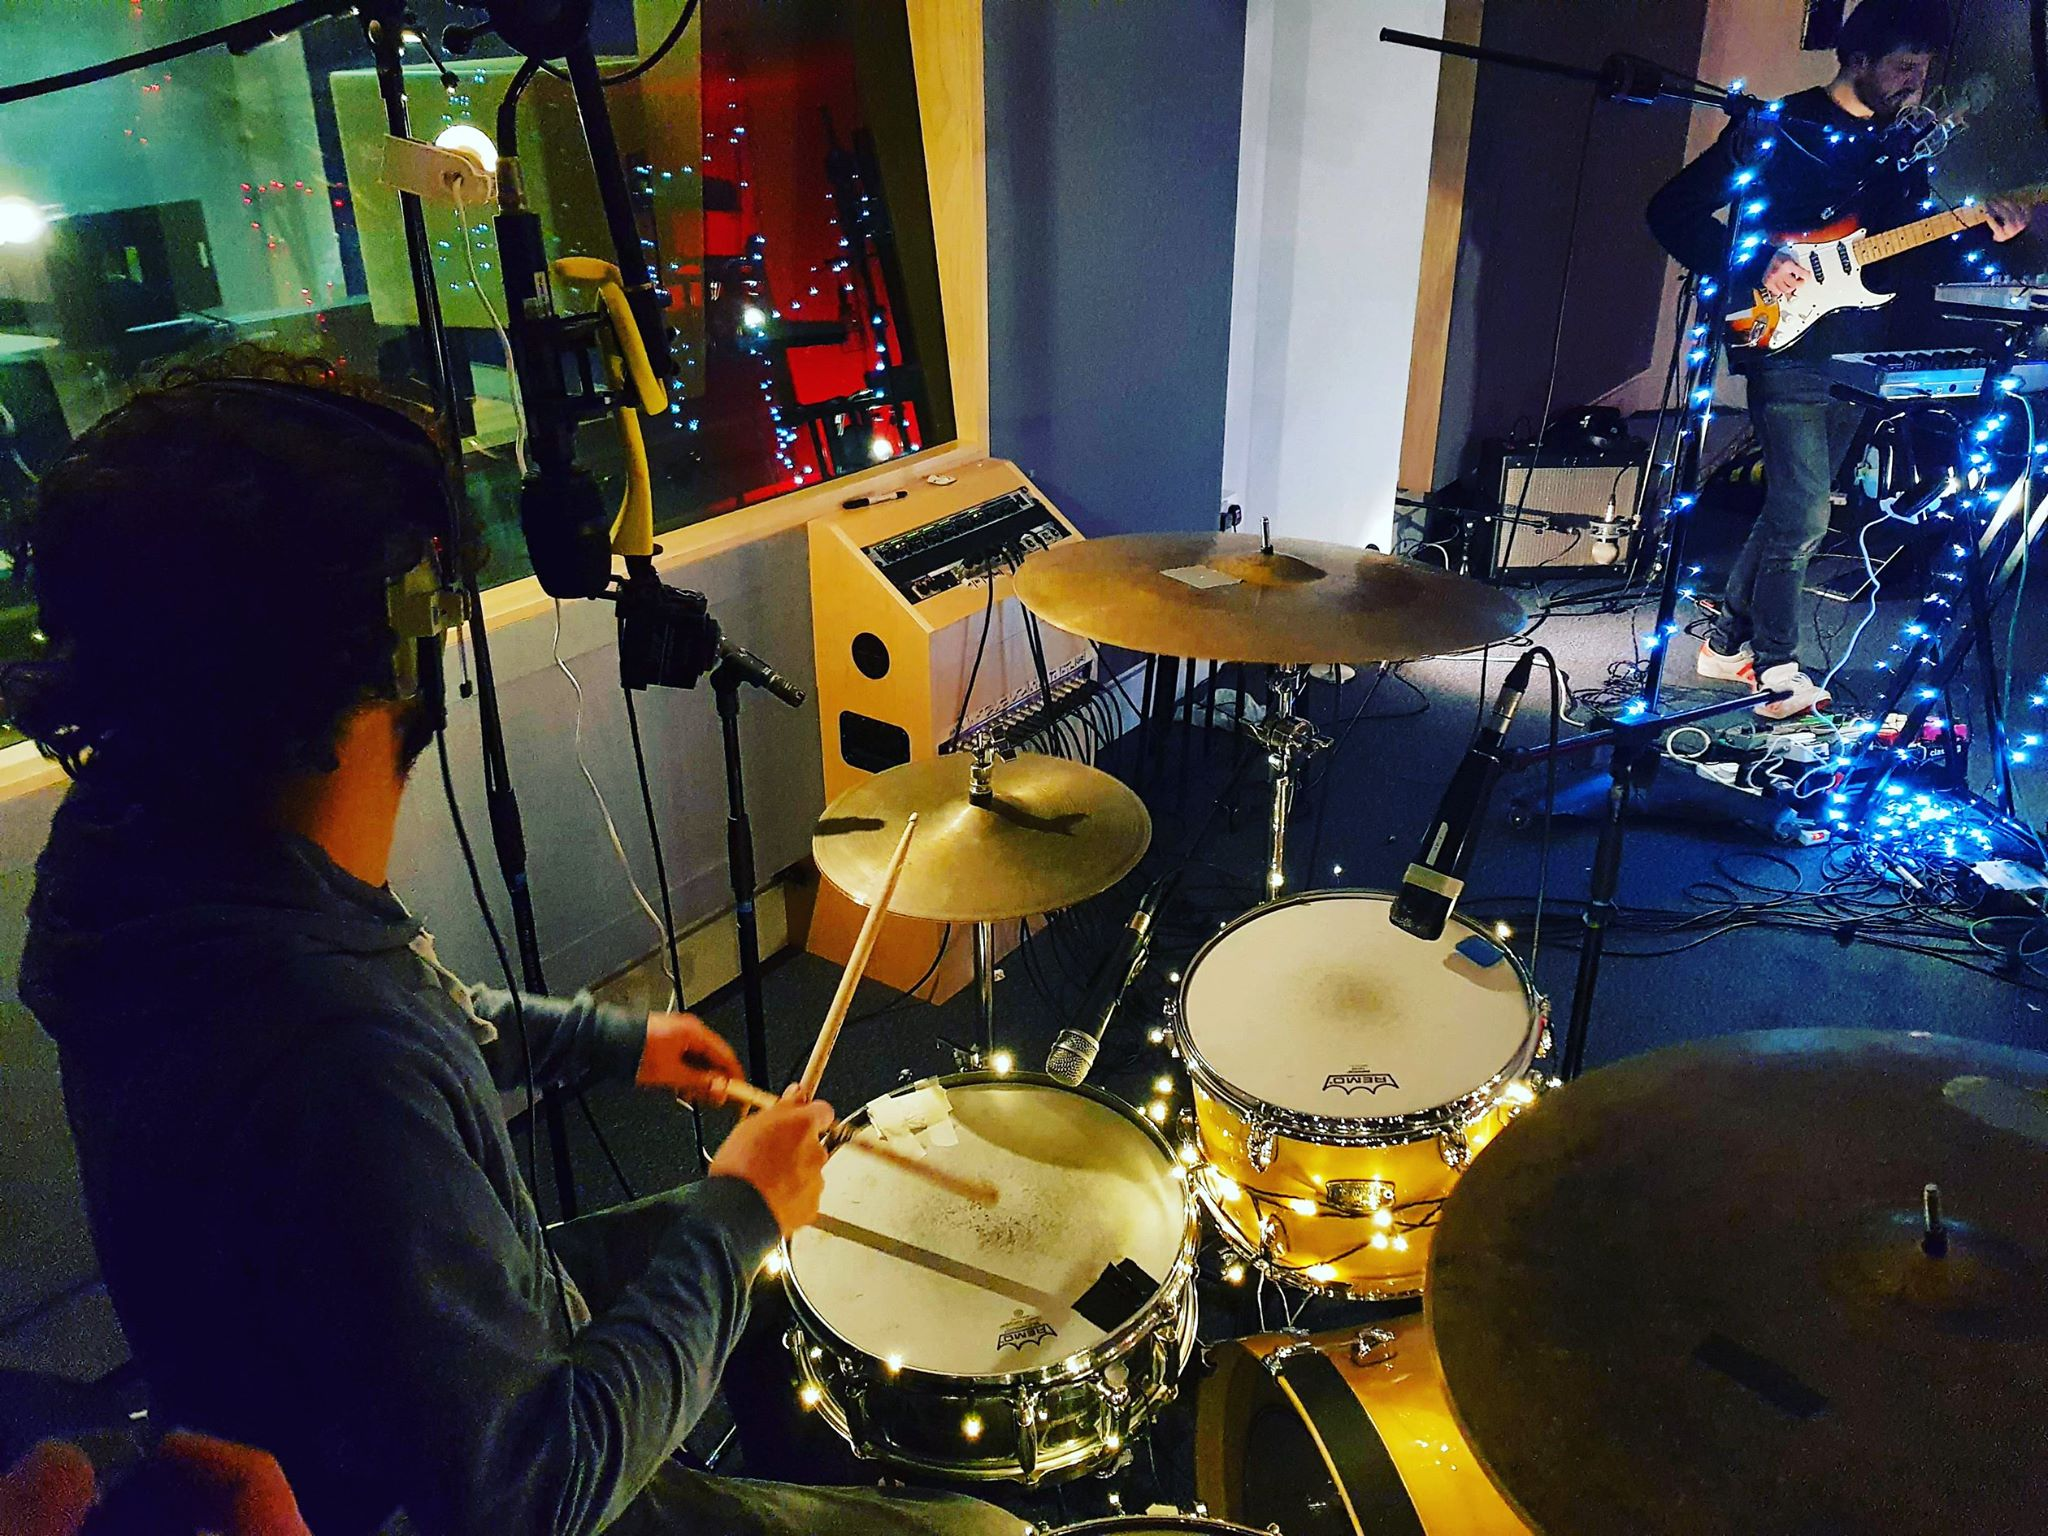 Camera + Ambisonic mic on drums